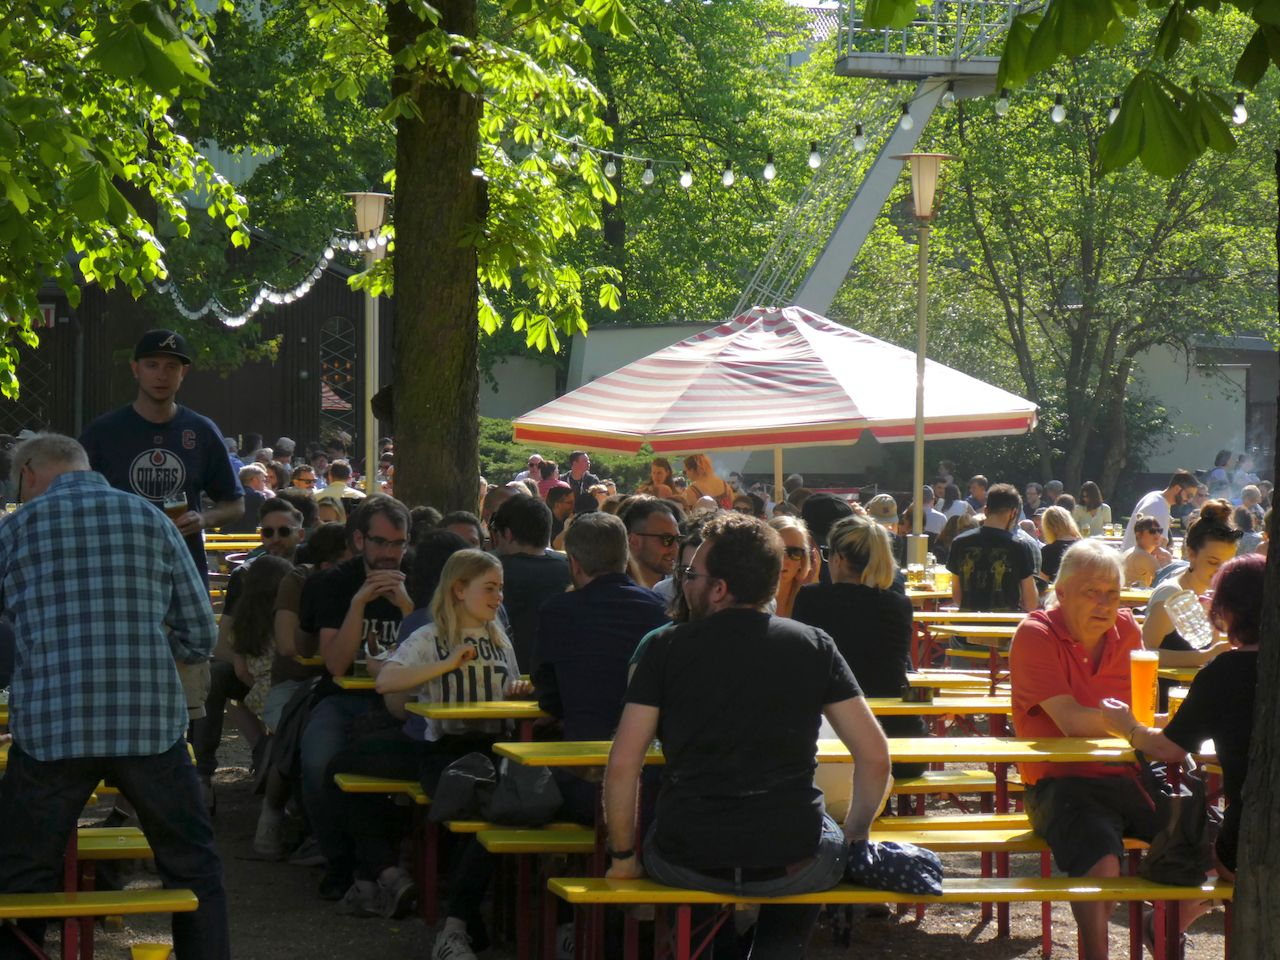 Crowd of people chilling out outdoors on a terrace restaurant